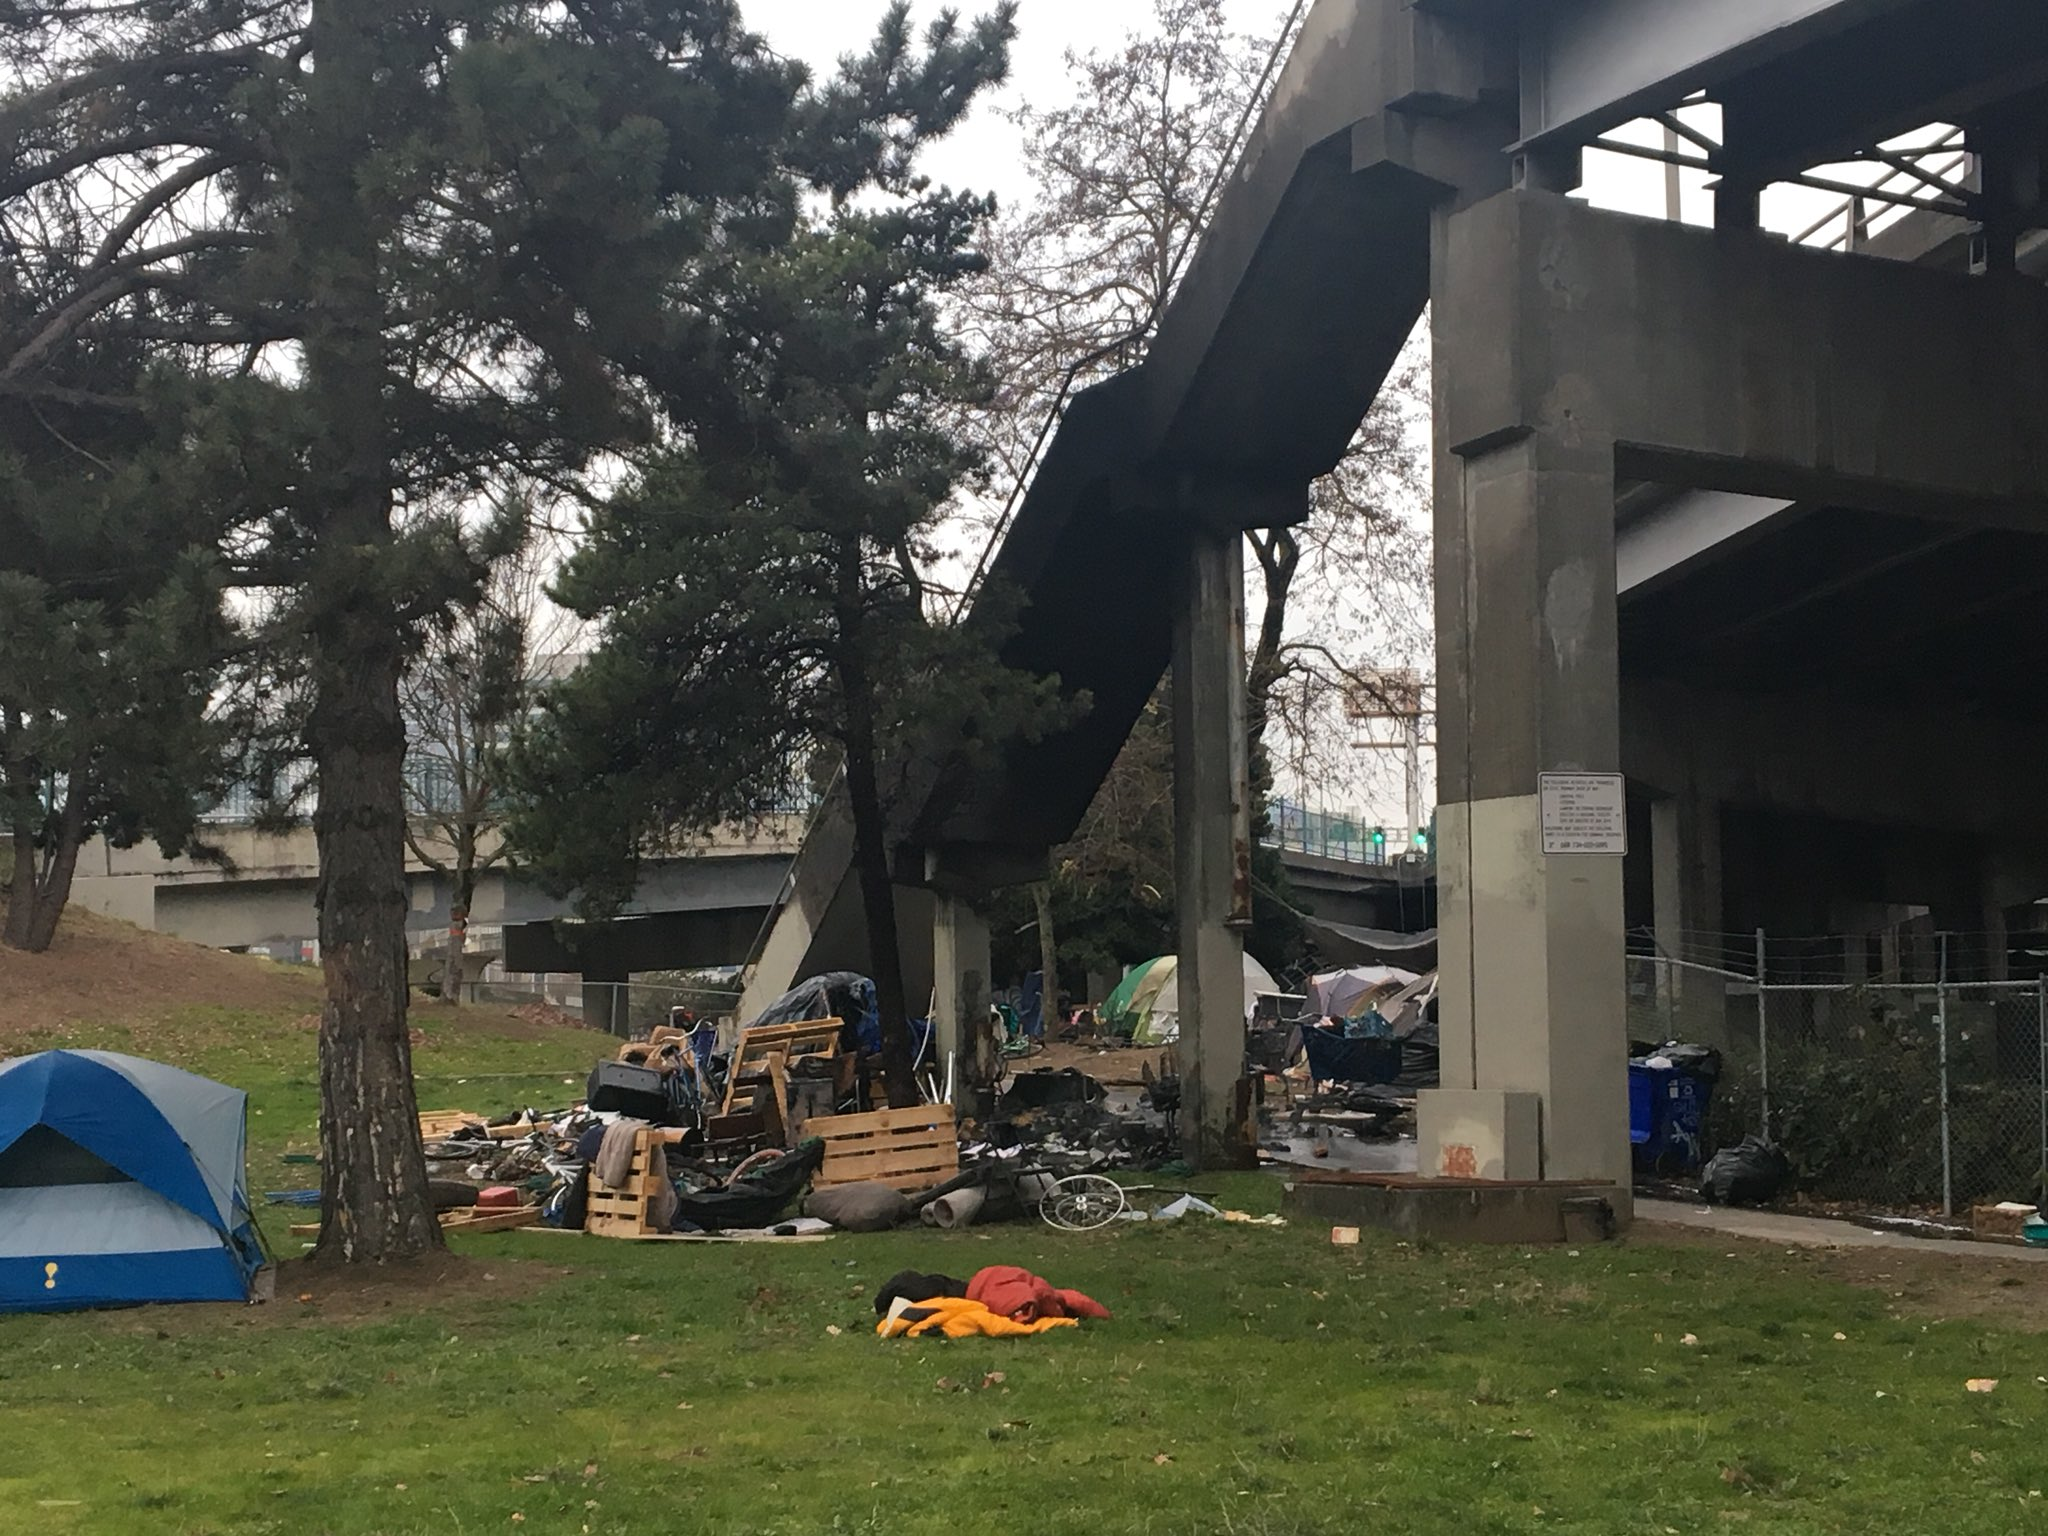 Crews responded to tents on fire at a homeless camp on the east side of the Morrison Bridge on Dec. 15, 2017. KATU photo